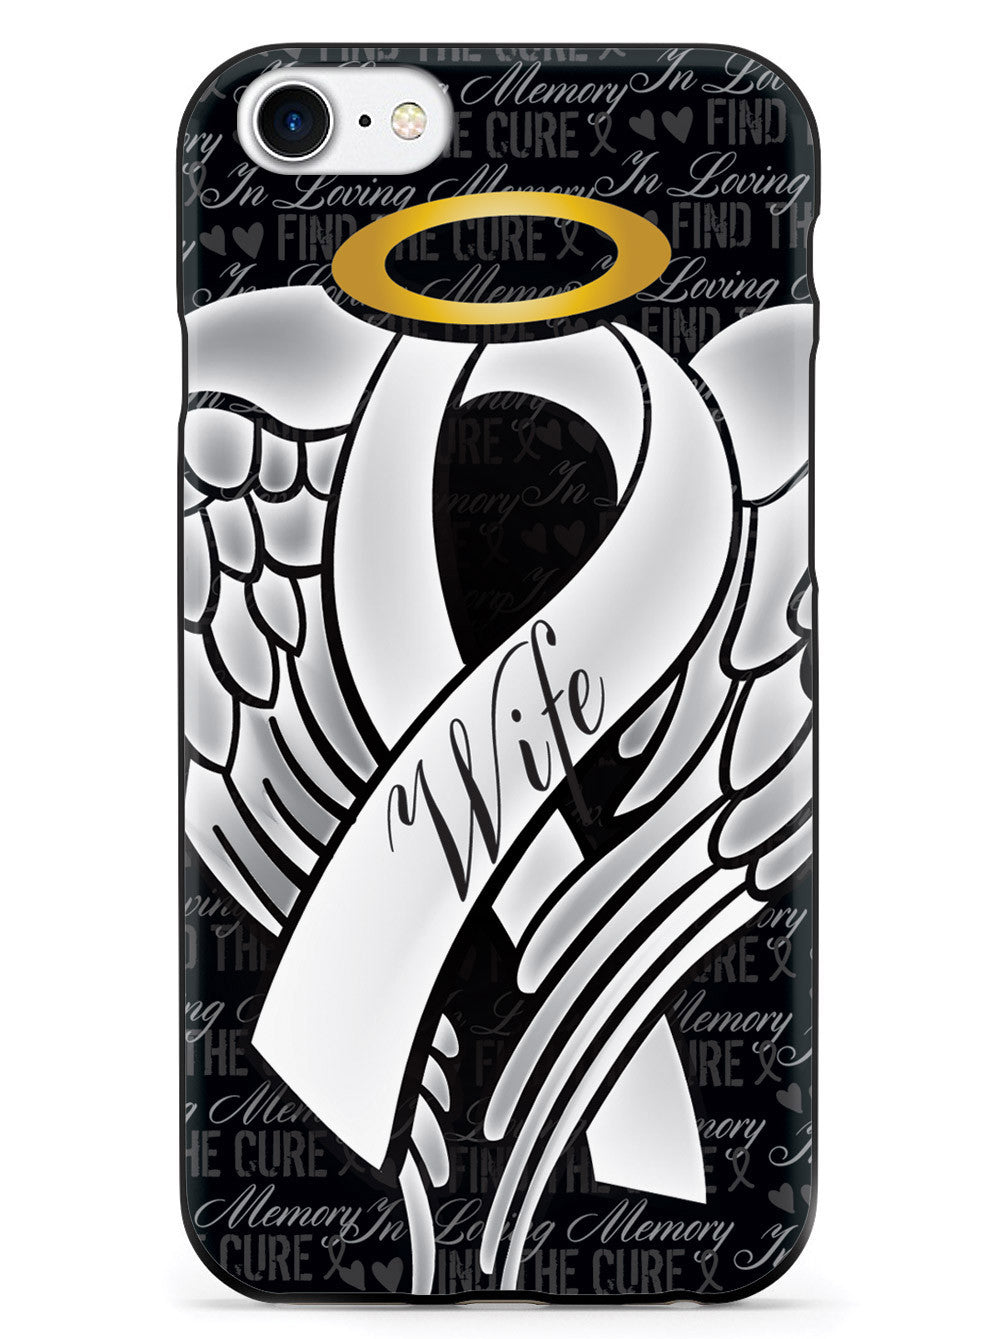 In Loving Memory of My Wife - White Ribbon Case